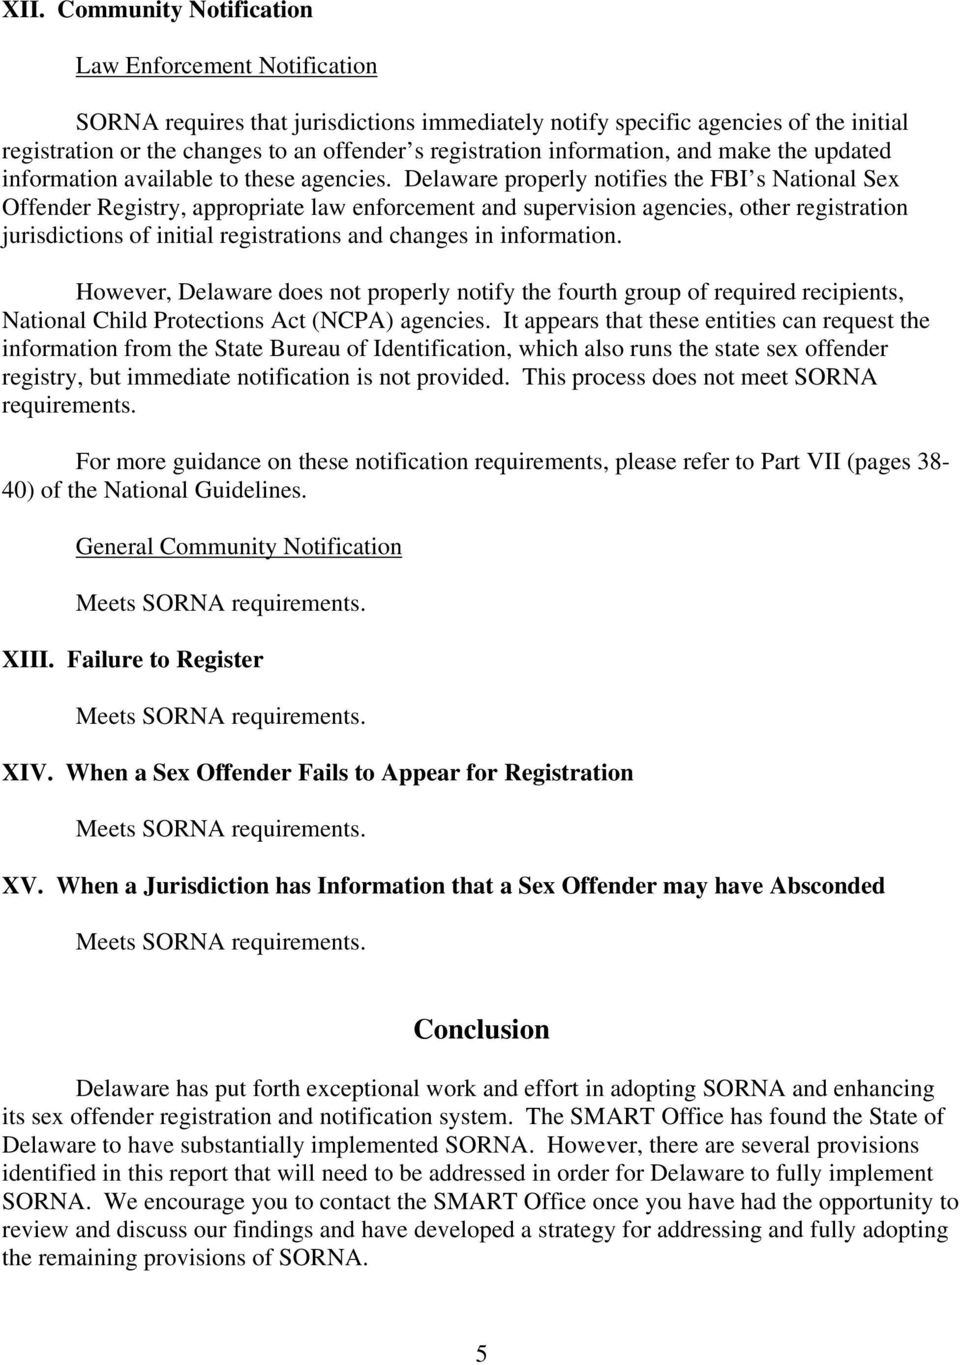 Delaware properly notifies the FBI s National Sex Offender Registry, appropriate law enforcement and supervision agencies, other registration jurisdictions of initial registrations and changes in